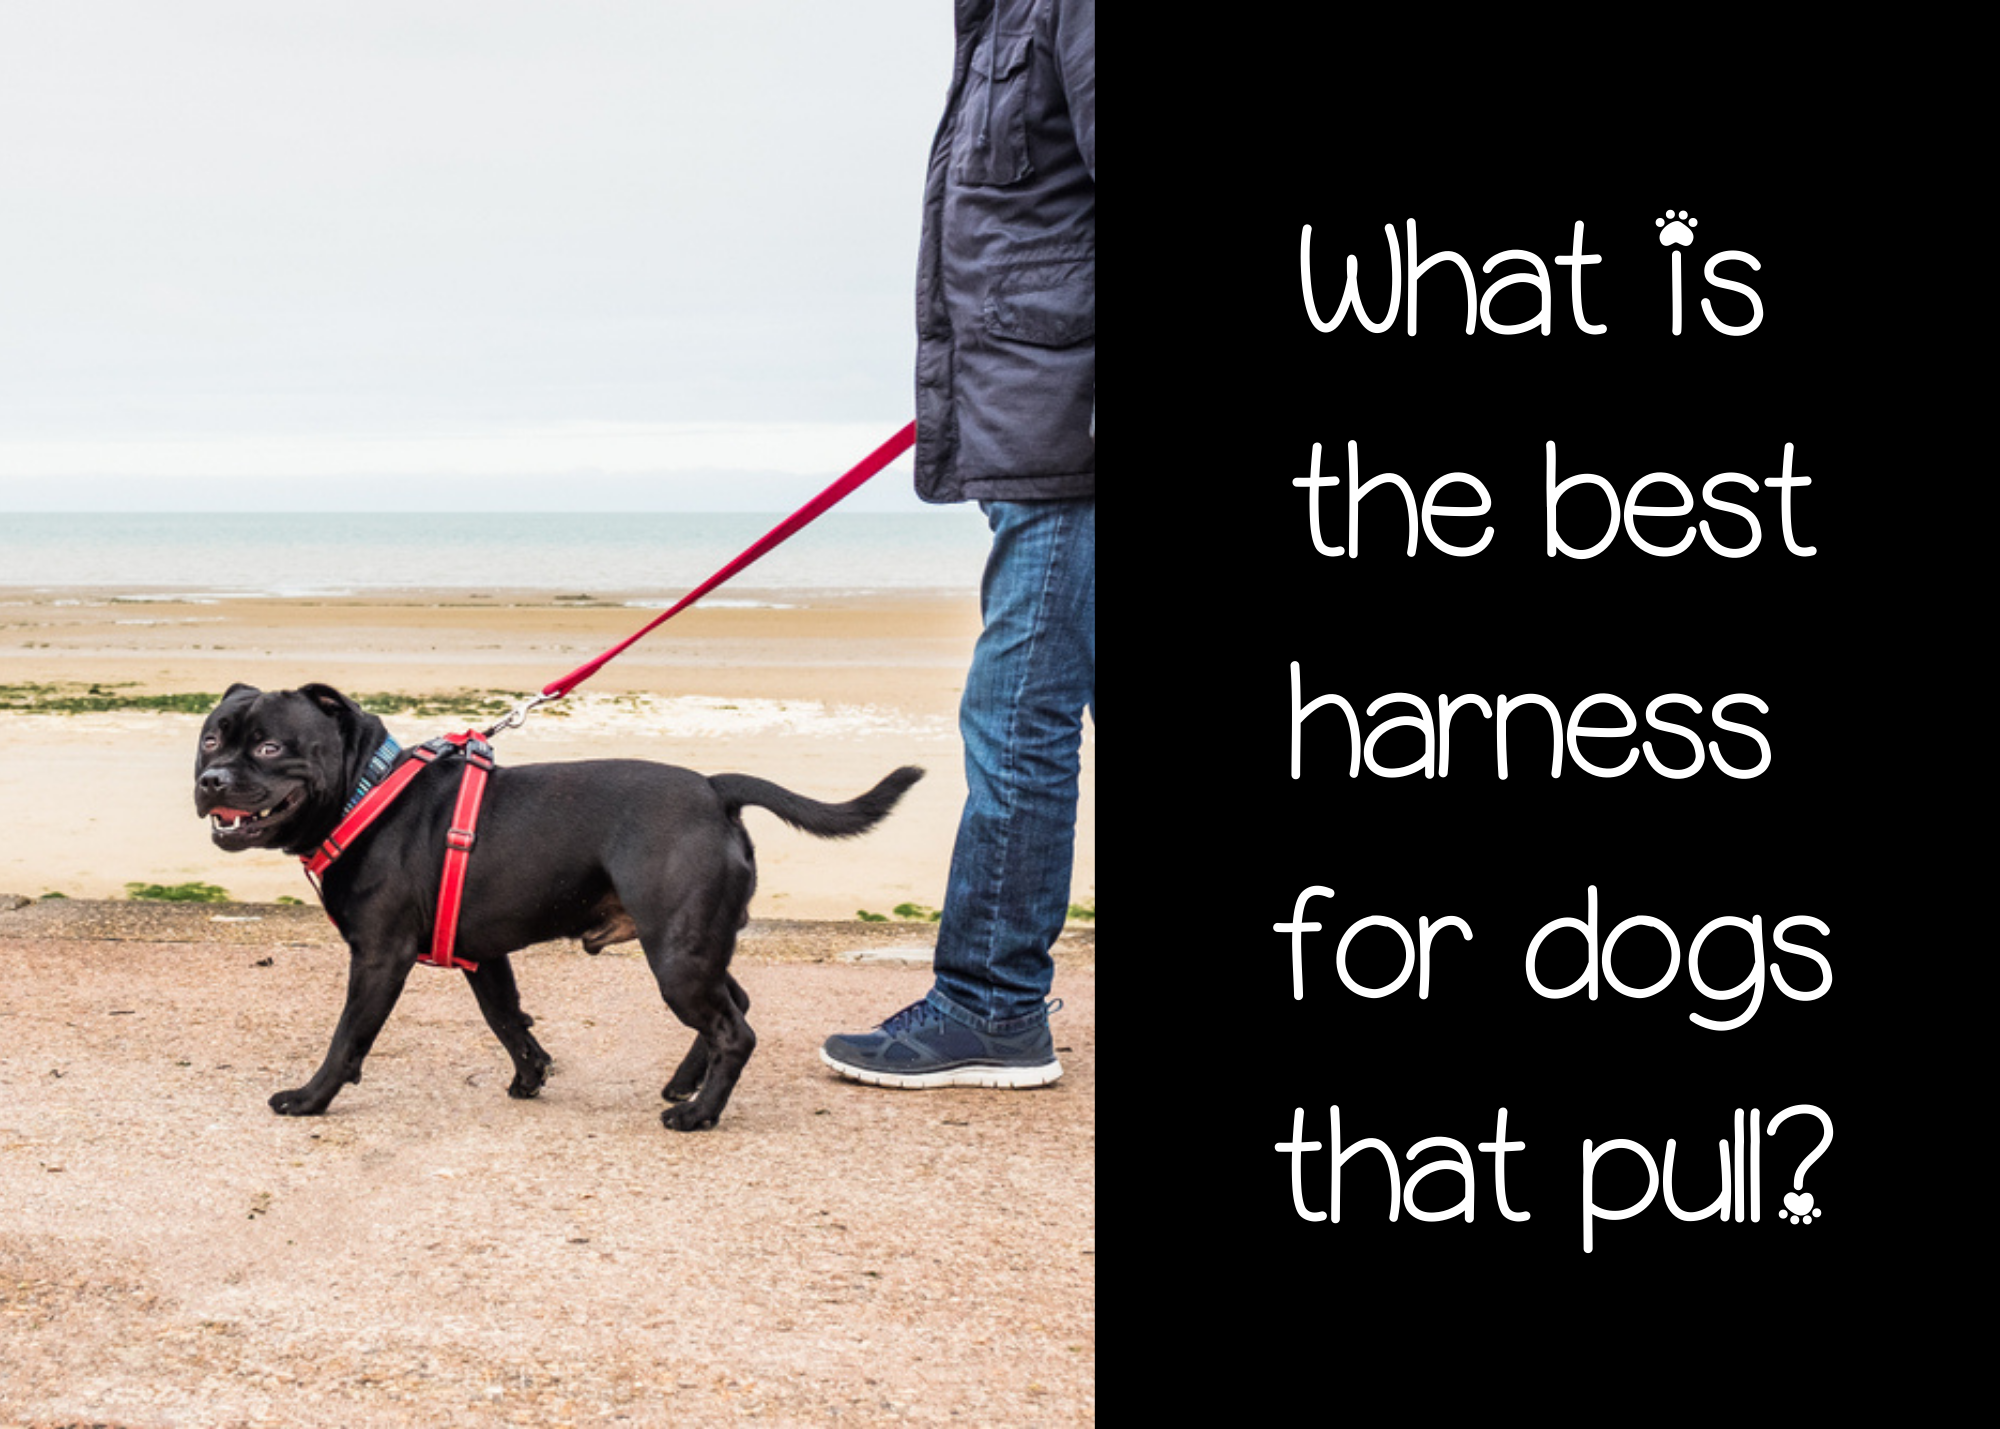 the best harness for dogs that pull